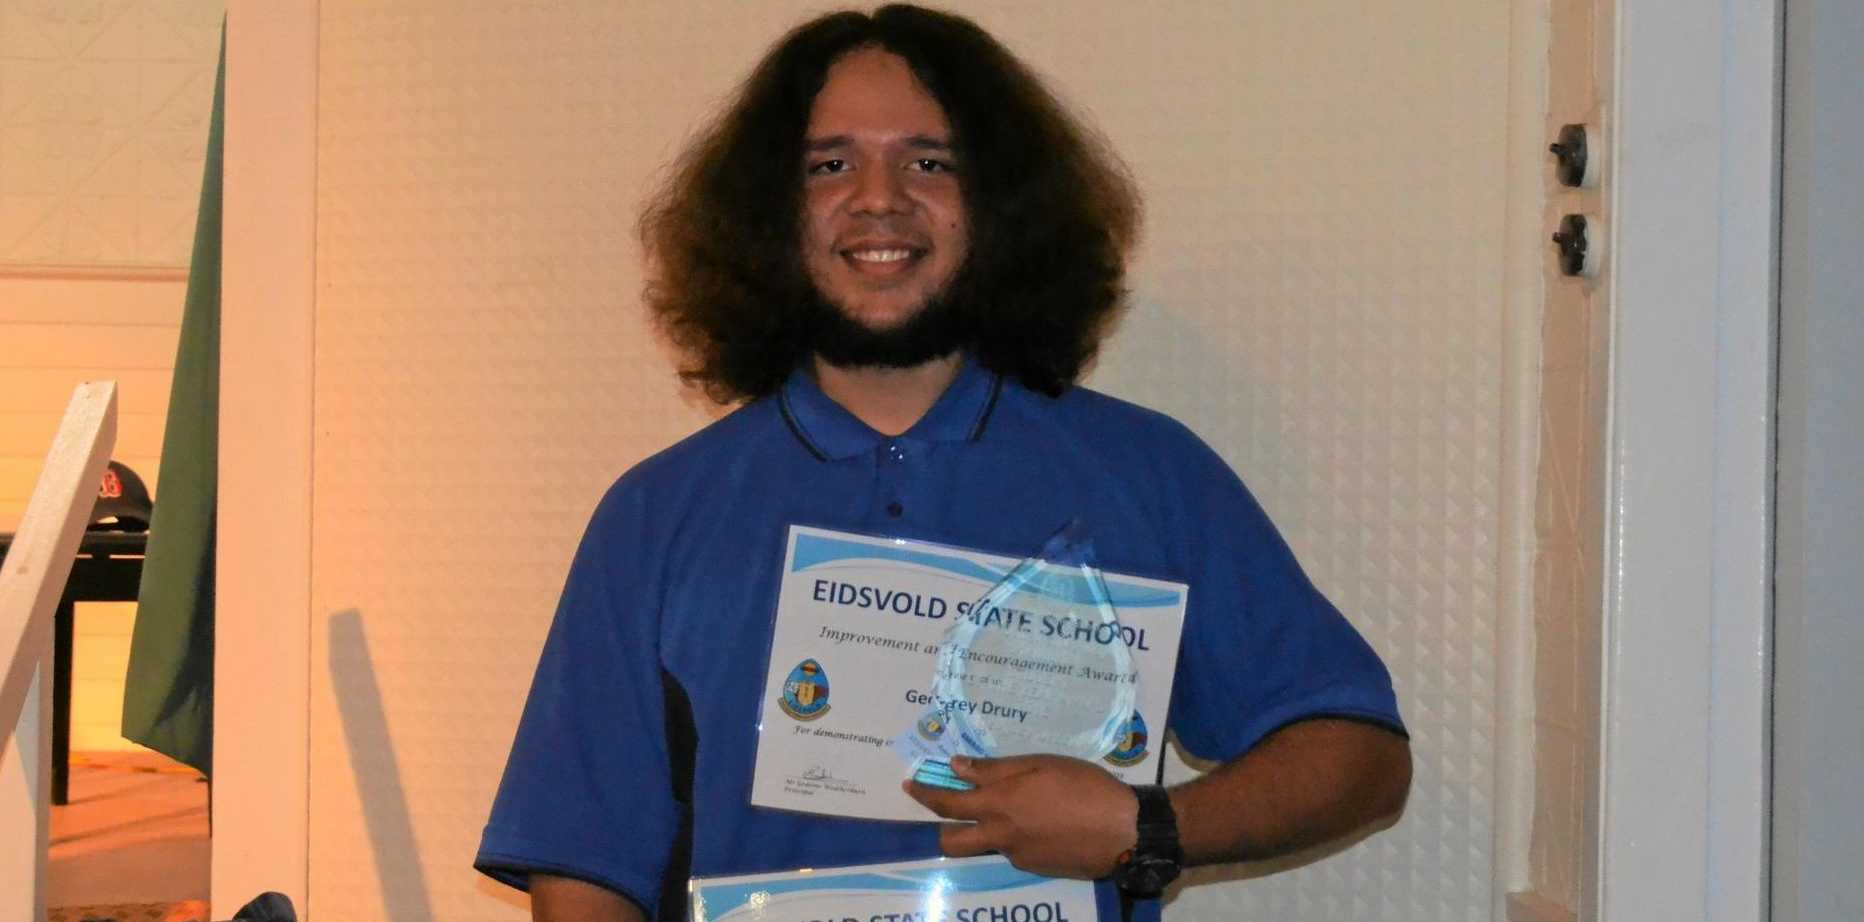 Geoffrey Drury received the  Student of the Year Award for Eidsvold State School.